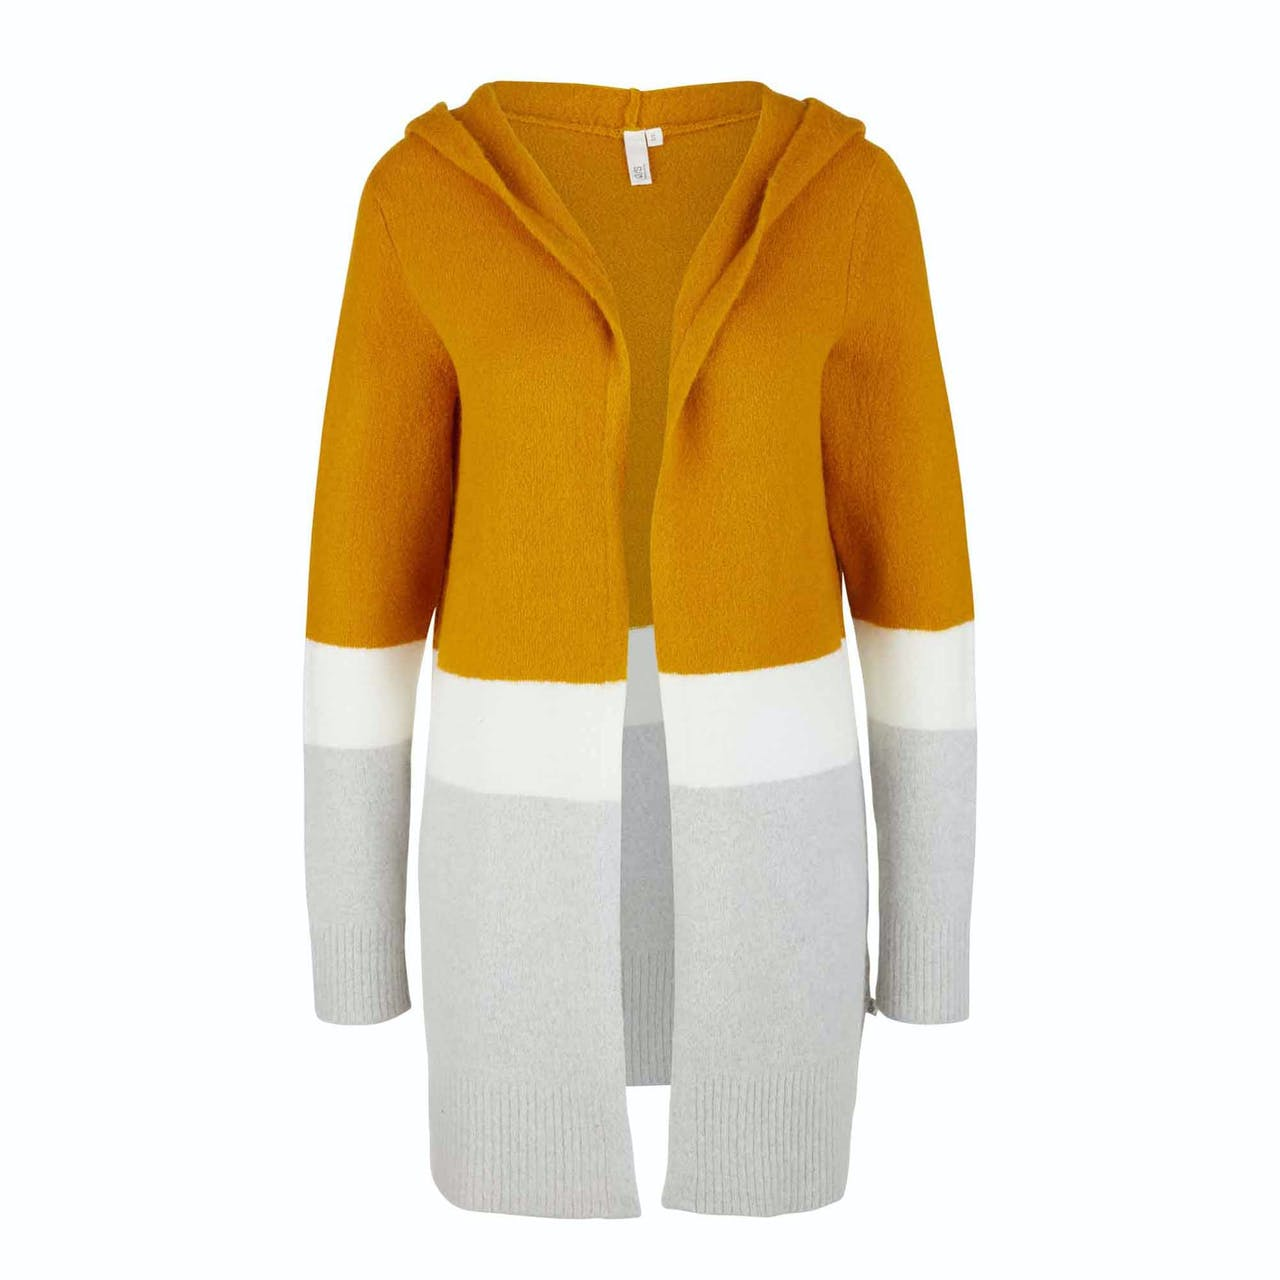 Strickjacke - Regular Fit - Colourblocking